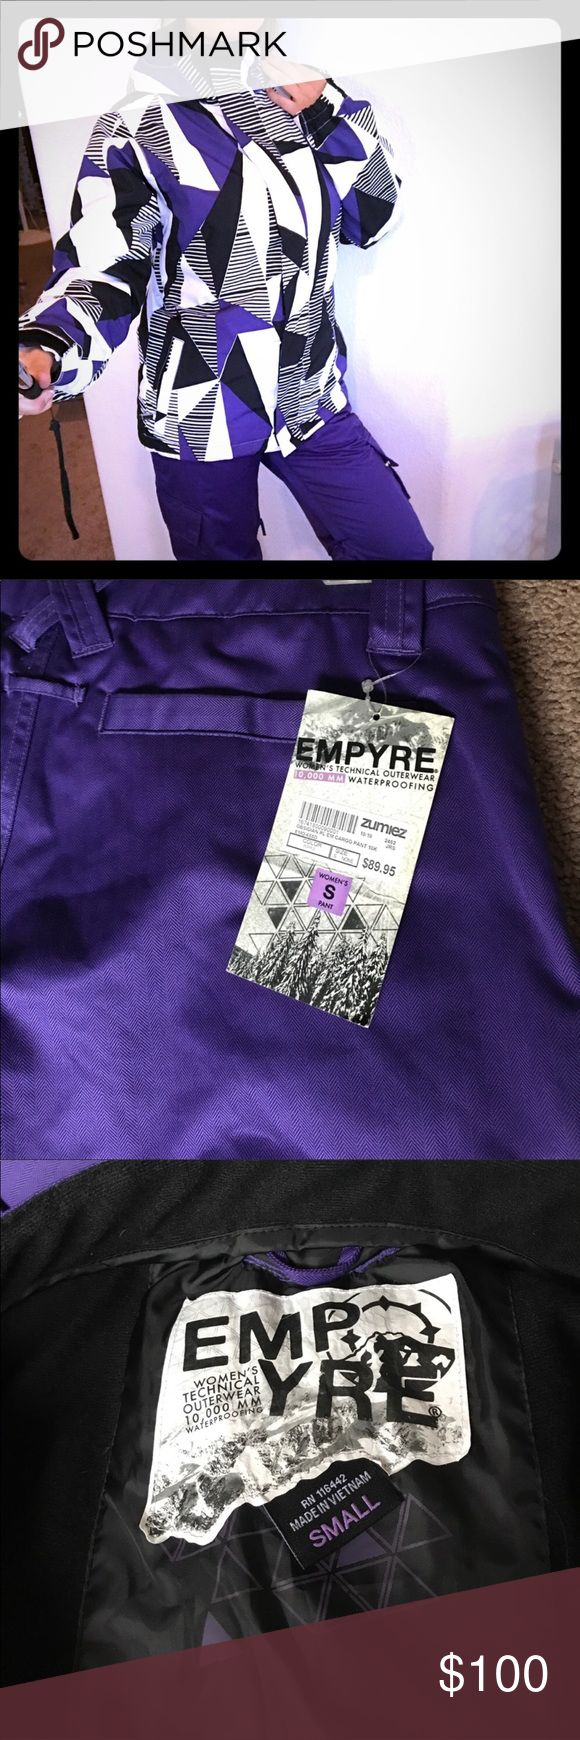 🌟SALE ZUMIEZ  EMPYRE Snow Board FULL FIT 🚺 🌟✨SALE Woman's EMPYRE Snow Board FULL FIT Brand New Snow Board Out fit both jacket and Pants , the condition is NEW there's still tags on the pants , pants are a Size Small and The Jacket is A size Medium so if your a size small the out fit should fit you fine and the jacket is not that big I'm a size small and it's fits perfect , I bought this out fit right before moving to Vegas unfortunately there's no snow out here so I never got to use it…